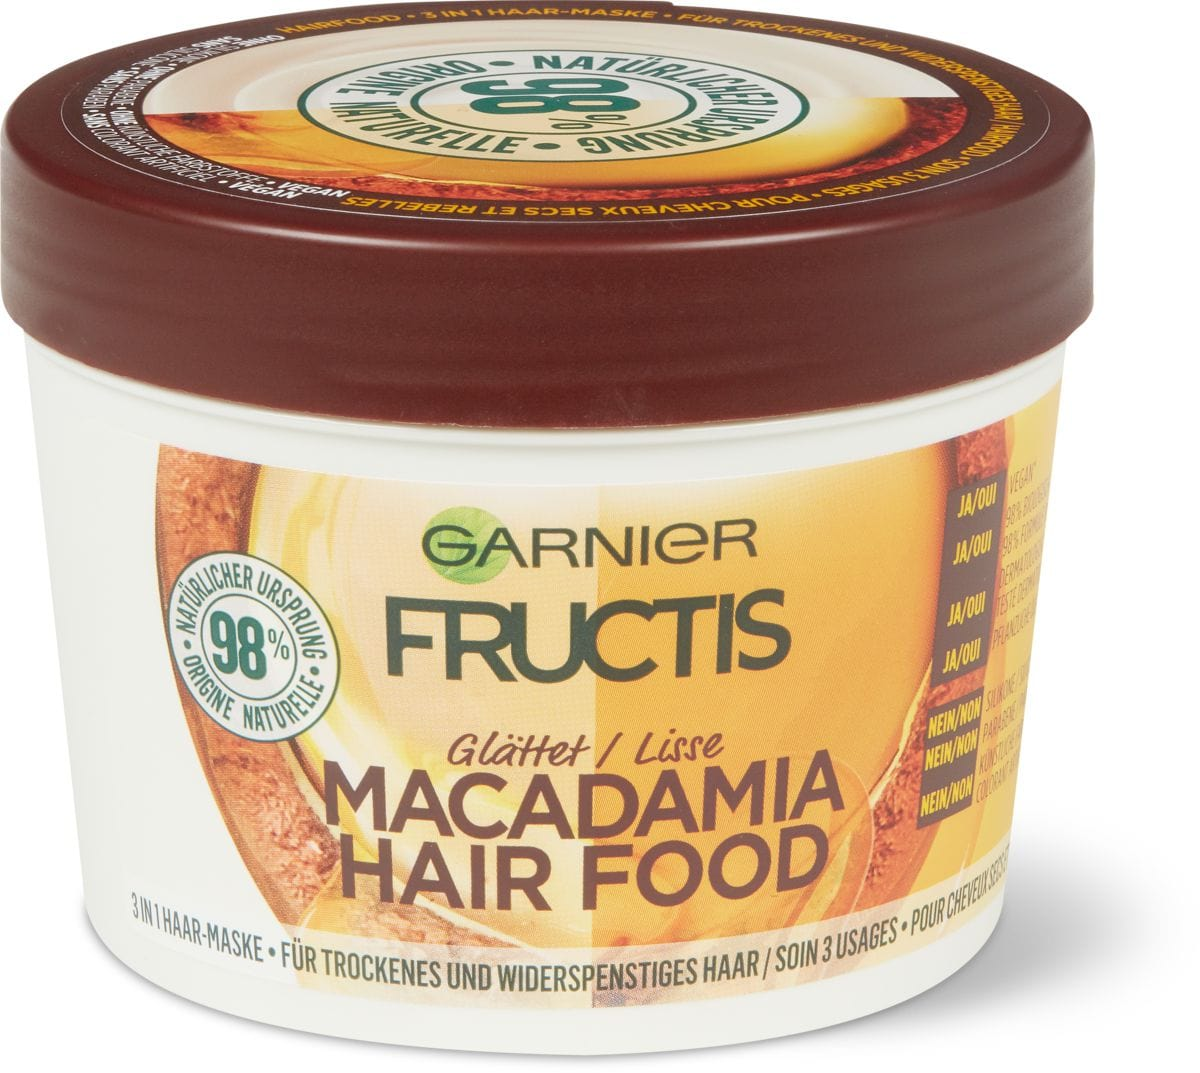 Garnier Fructis Macadamia Hair Food